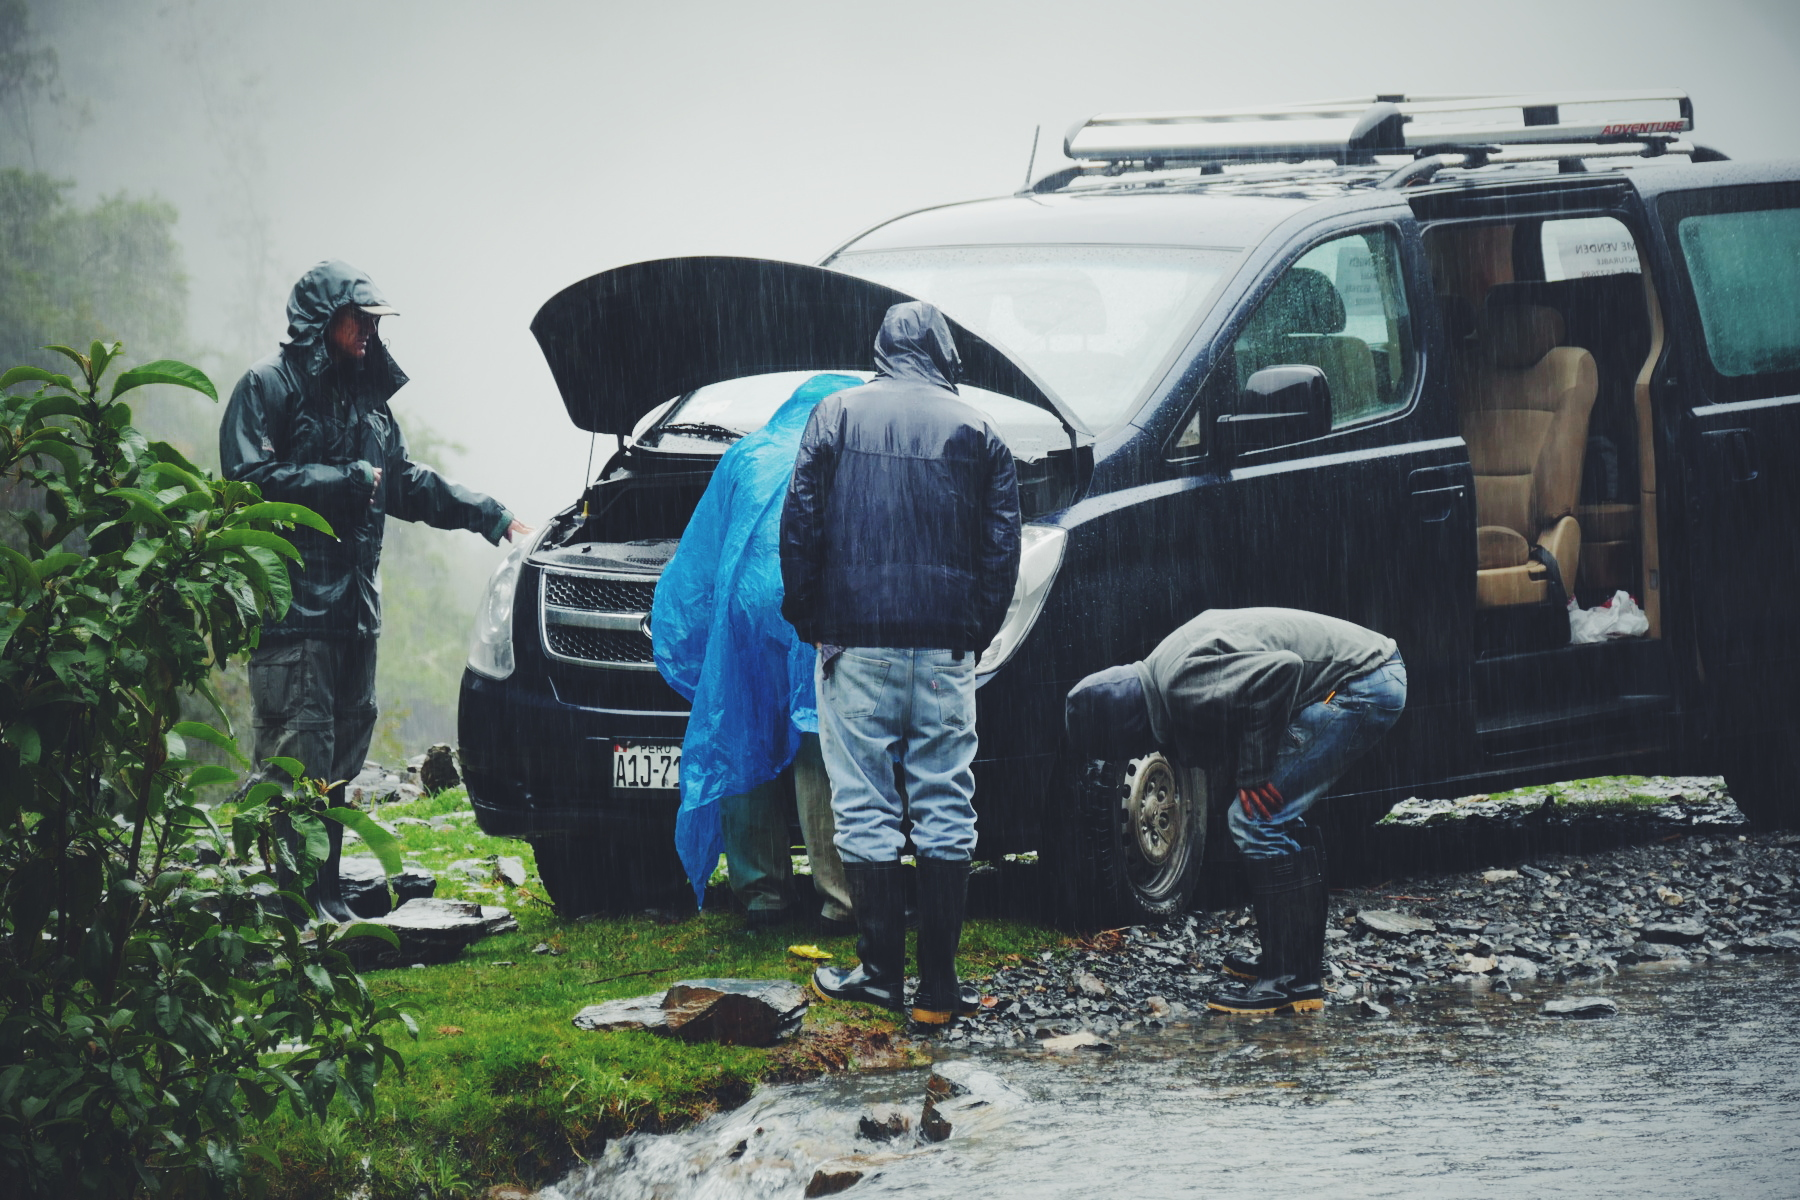 Changing the van's dead battery in a cold drizzle. Noah Strycker